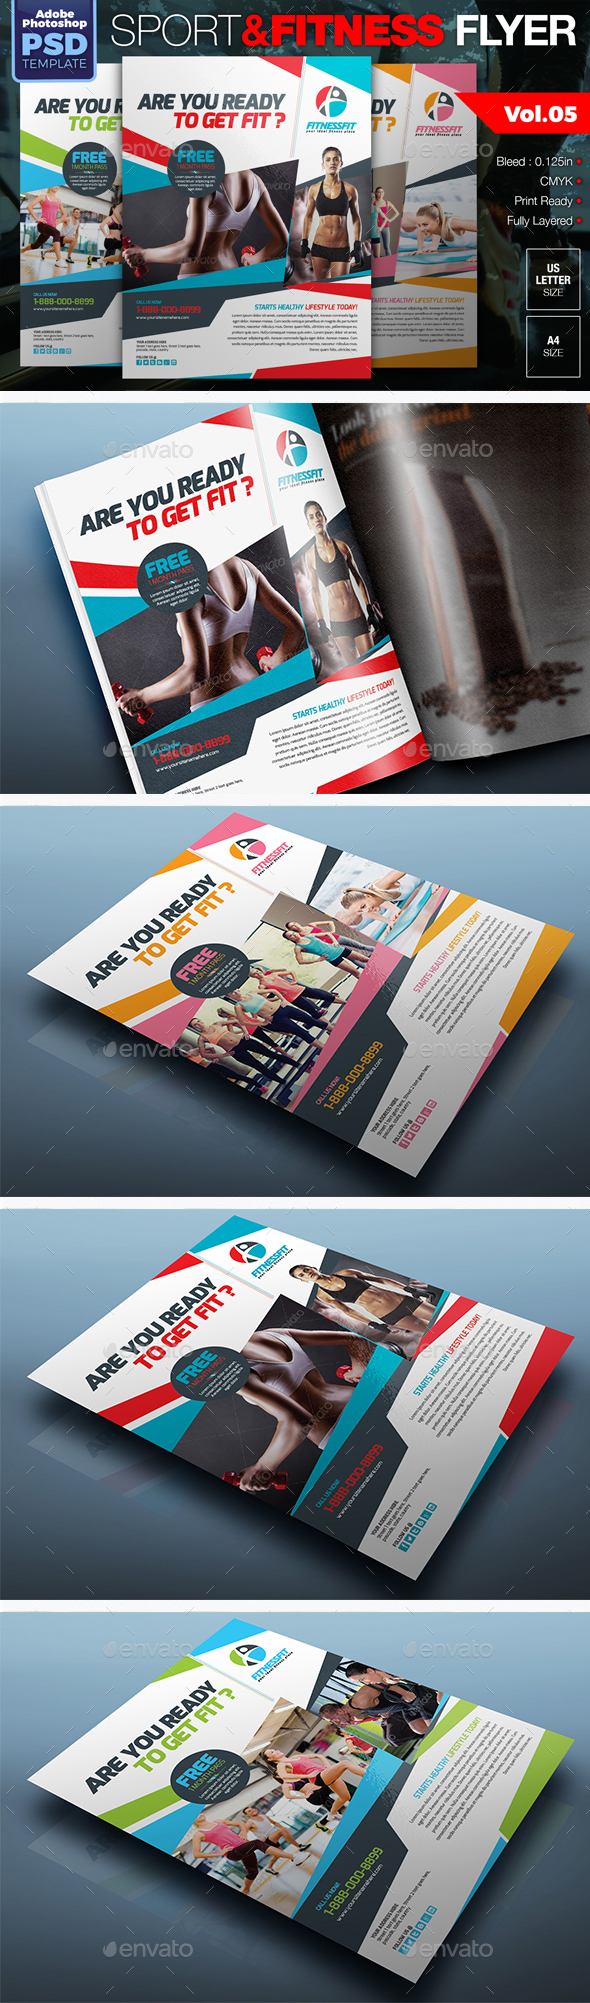 Sport & Fitness Flyer Vol.05 - Sports Events